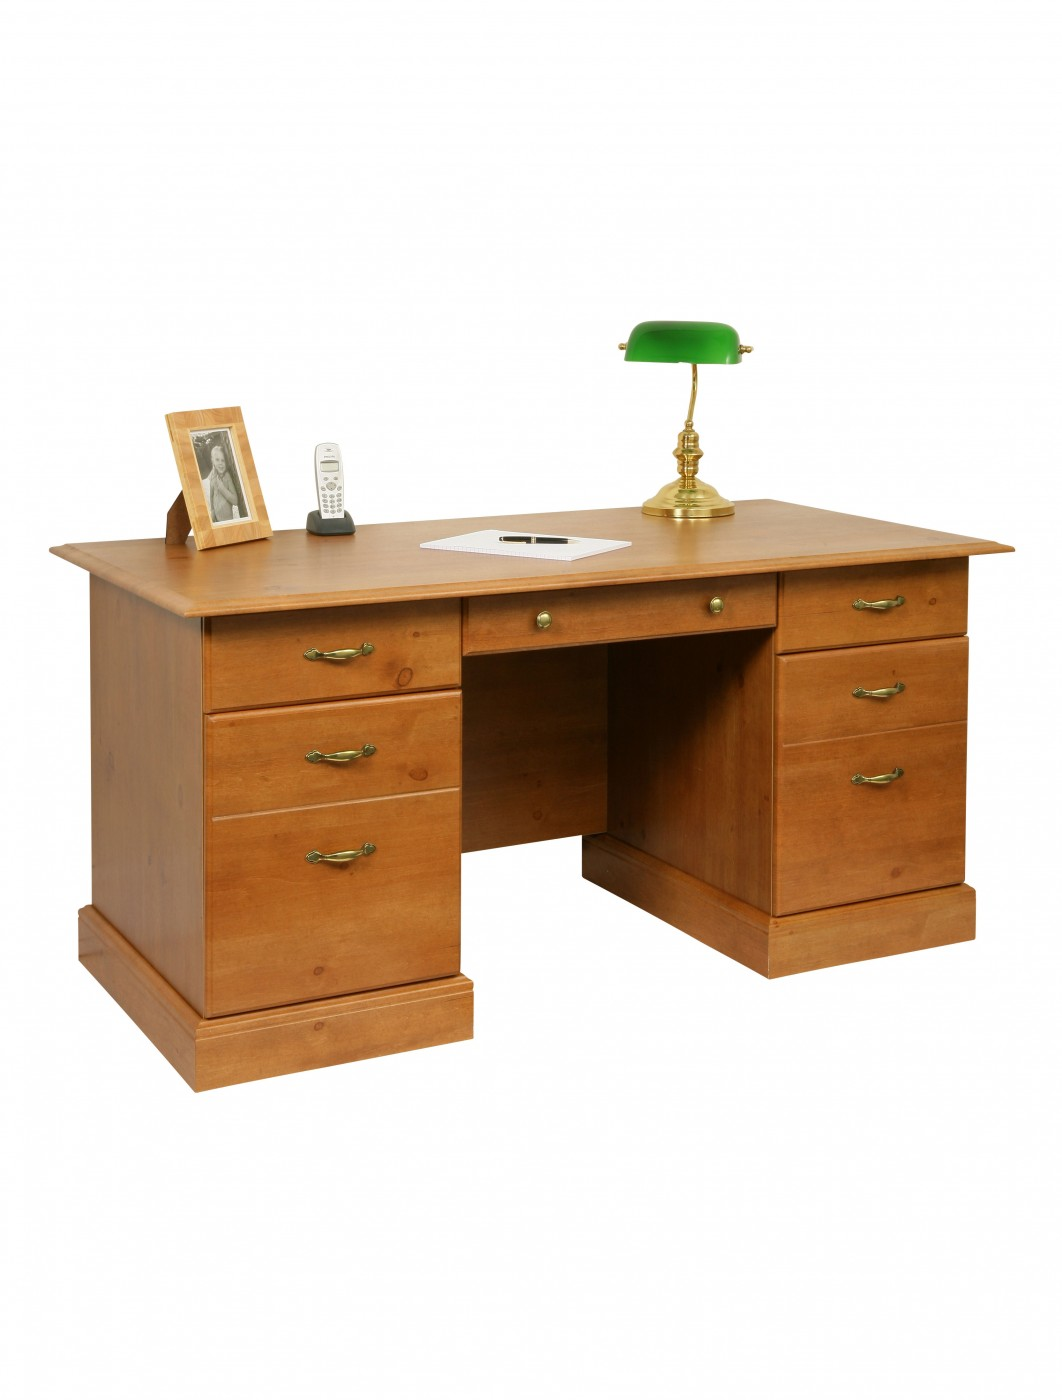 French Garden Office Desk Double Pedestal 10418 121